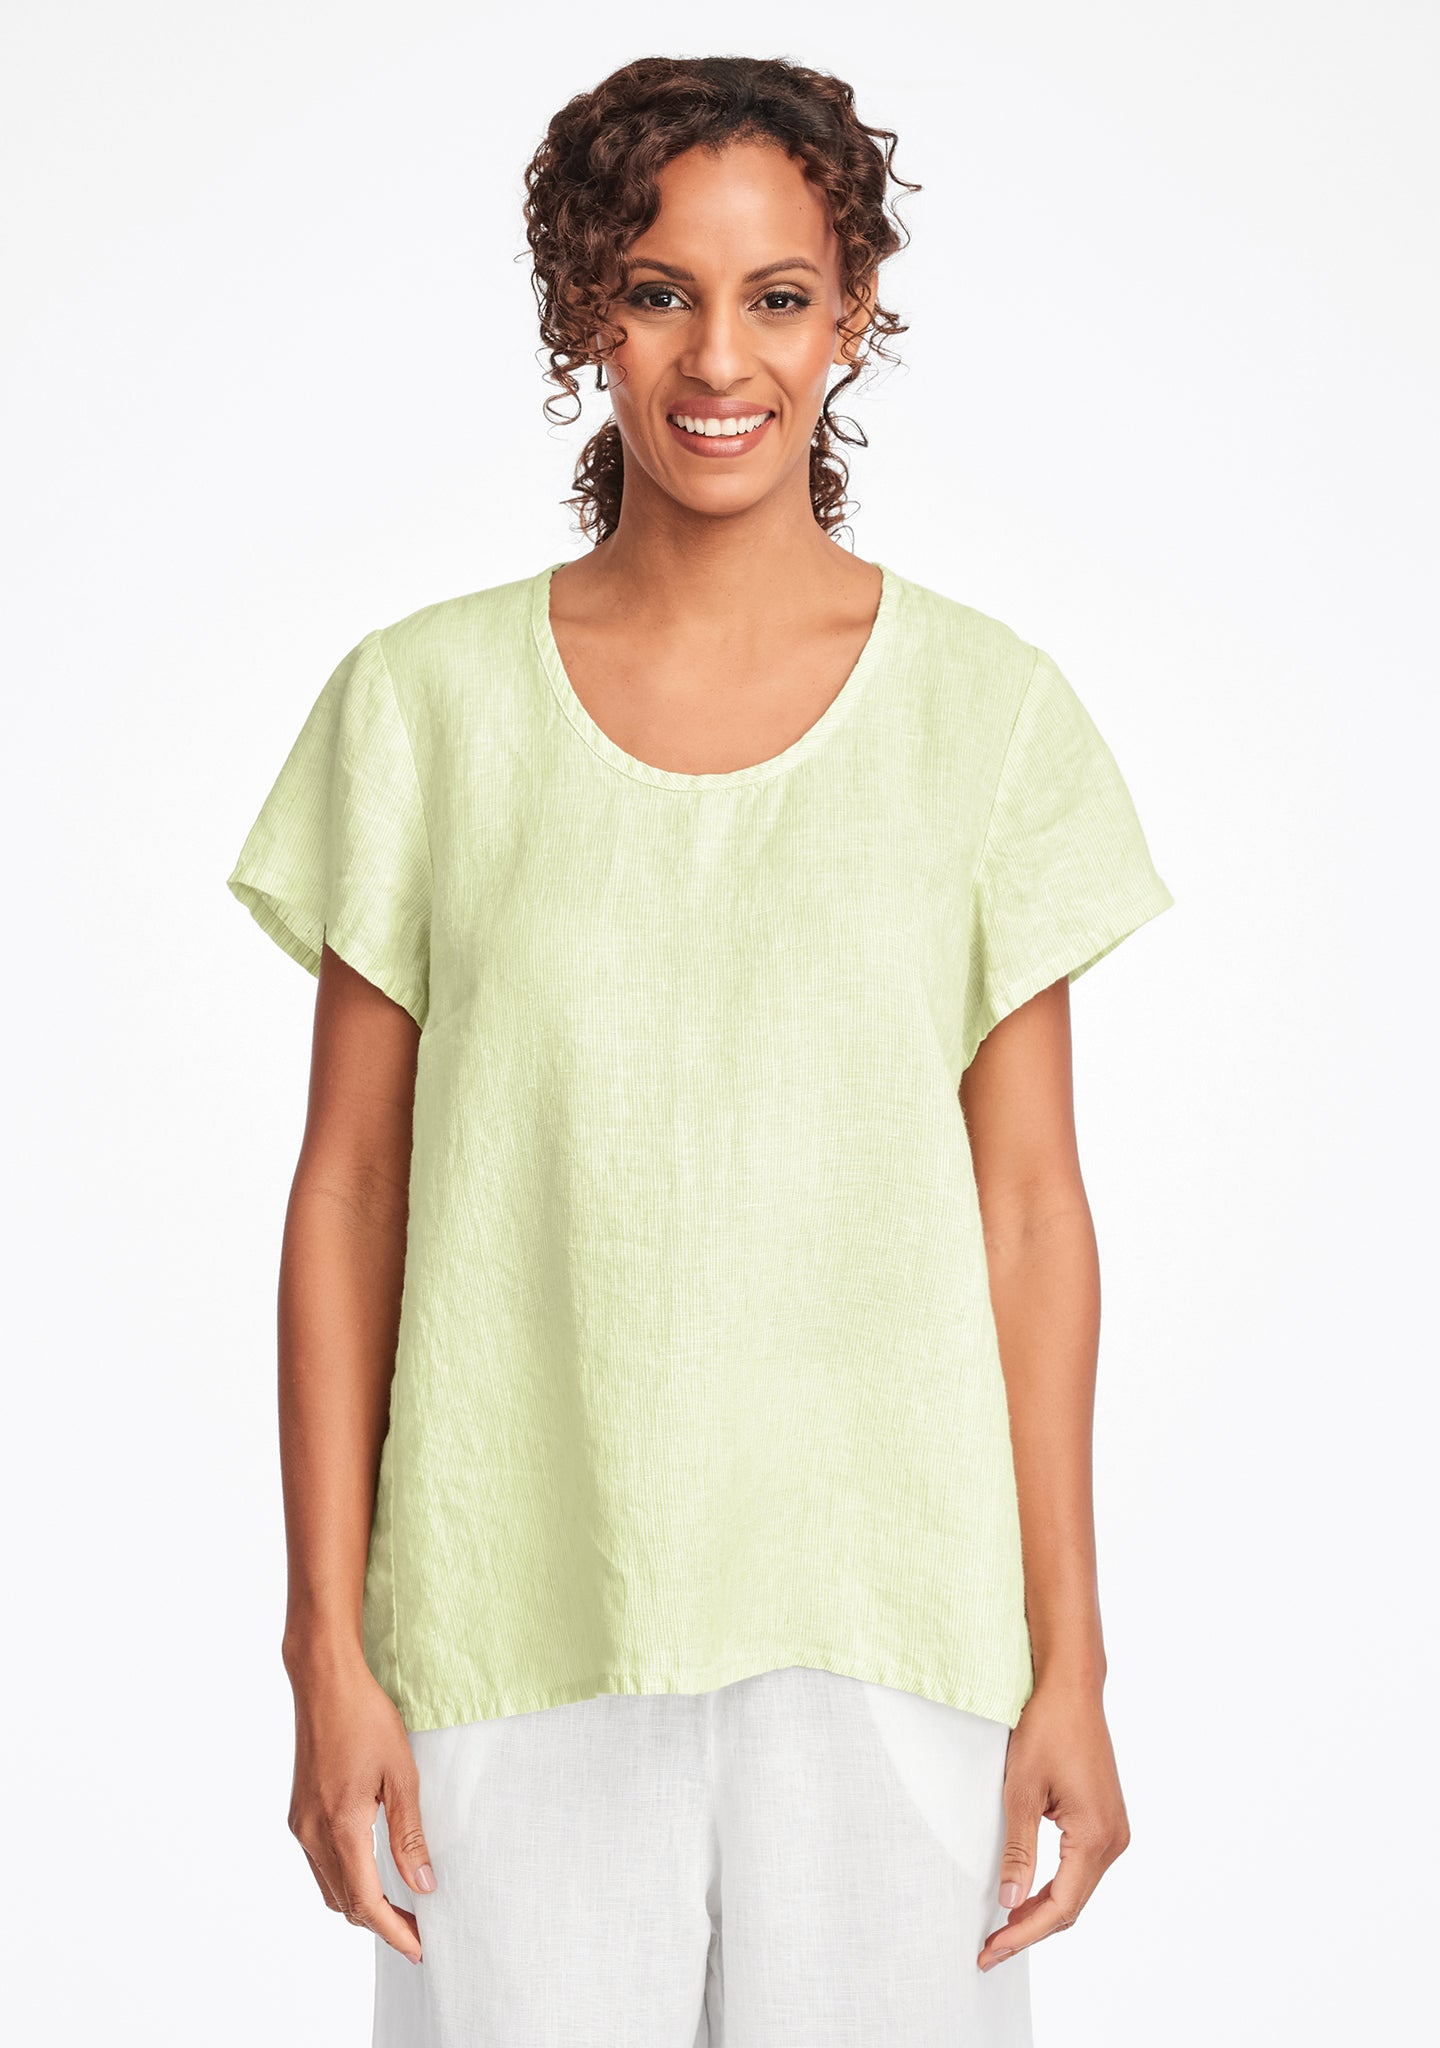 weightless tee linen t shirt green